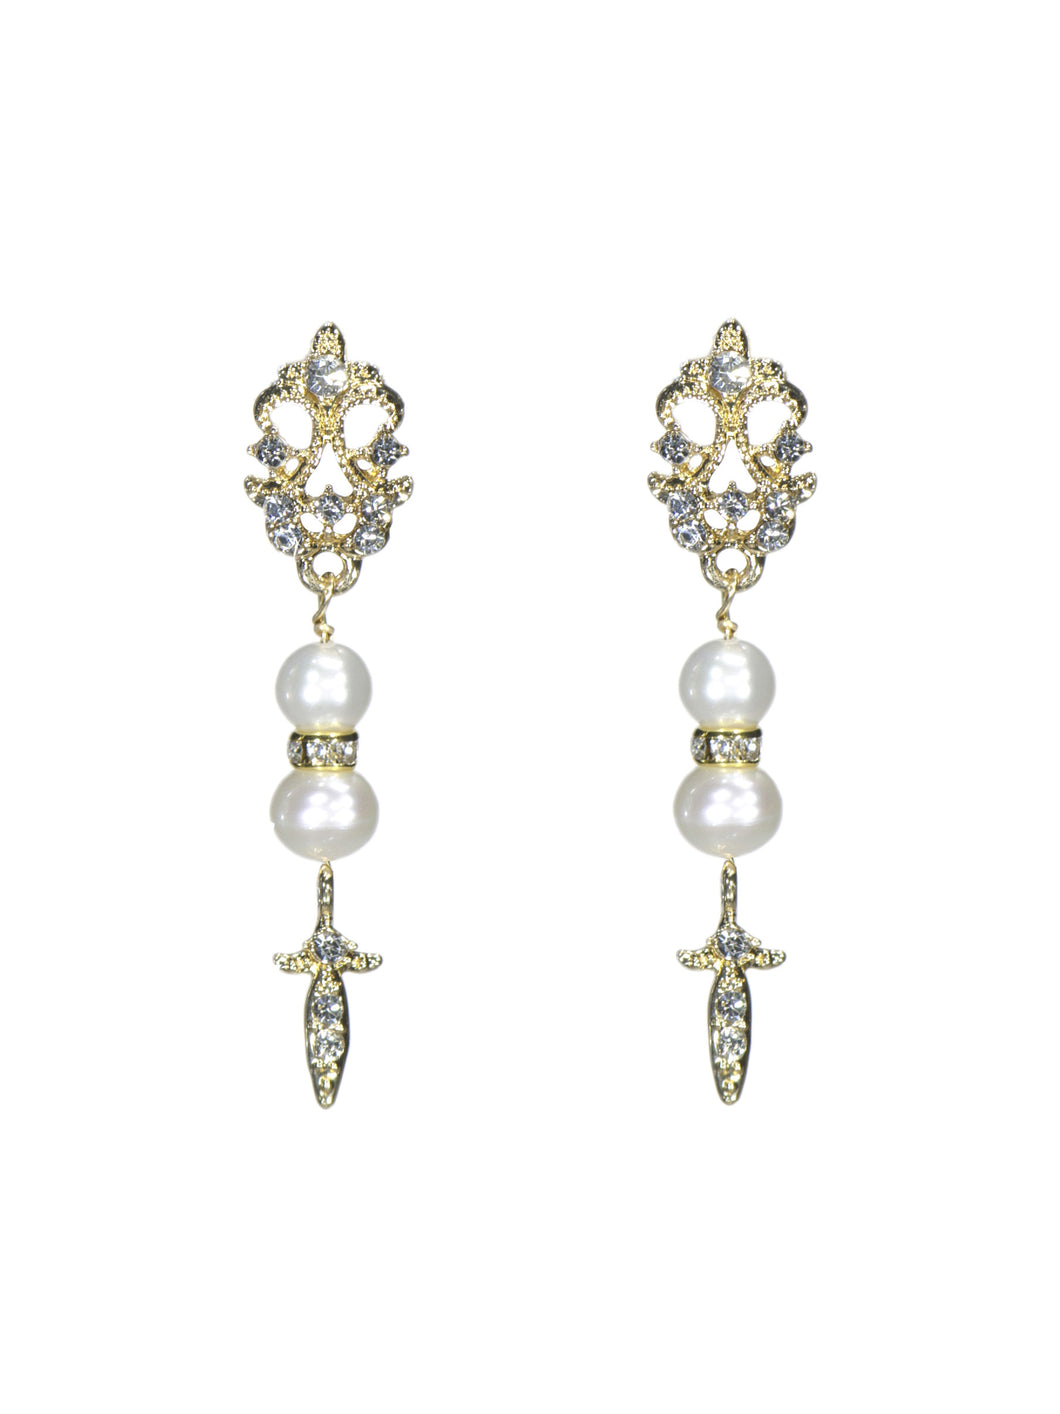 Enchantment Rhinestone & Pearl Drop Earrings - Long Gold